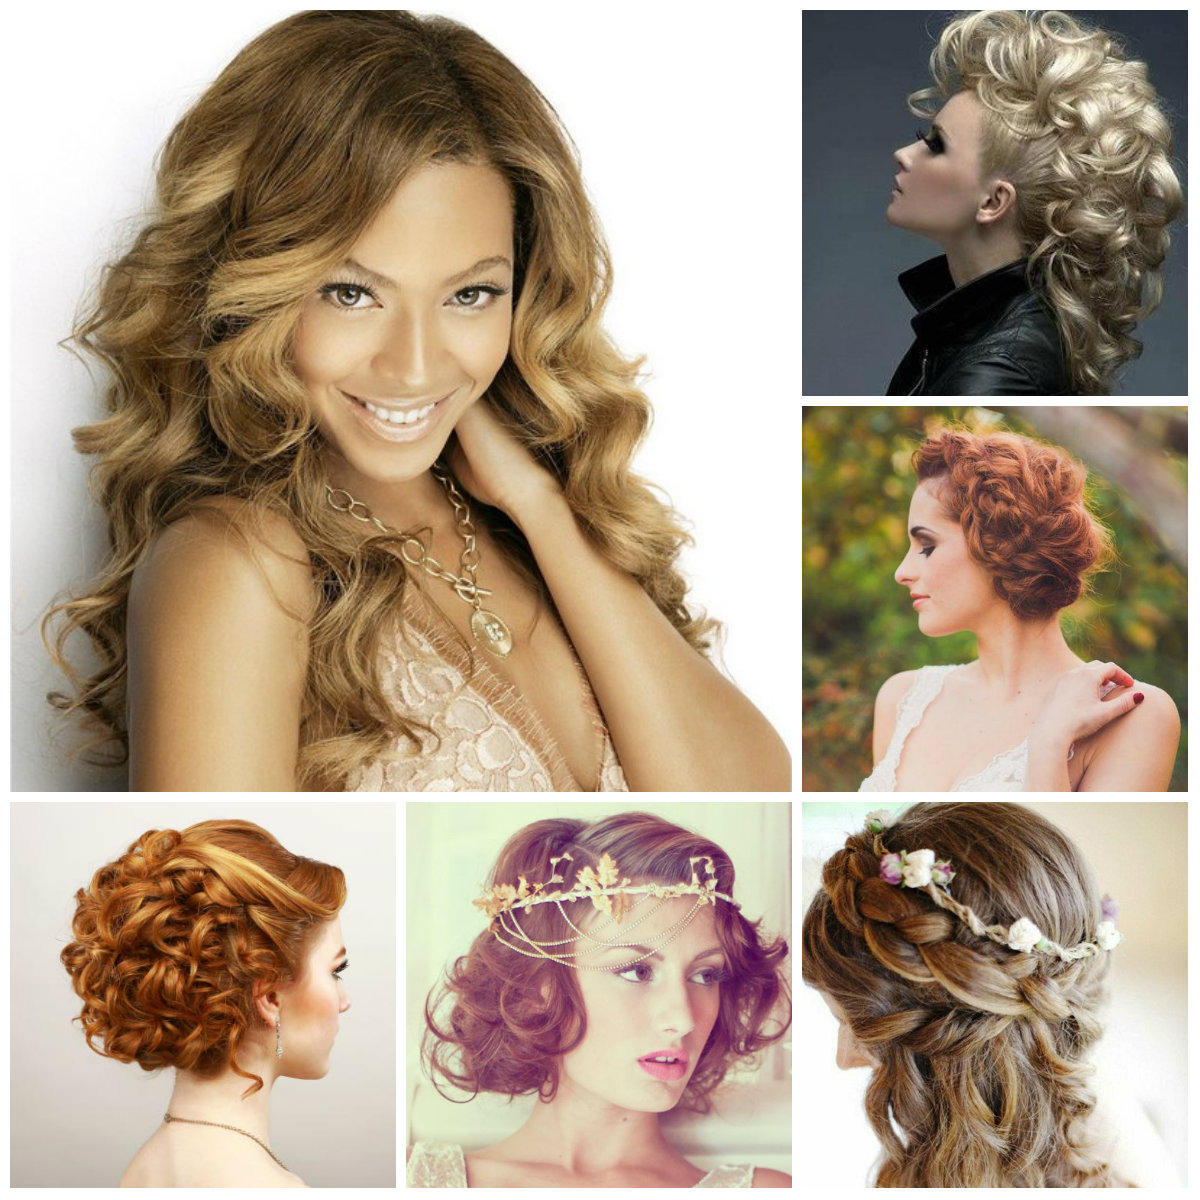 ... Curly Hairstyles For Prom 2016 Big Curls For Long Hair